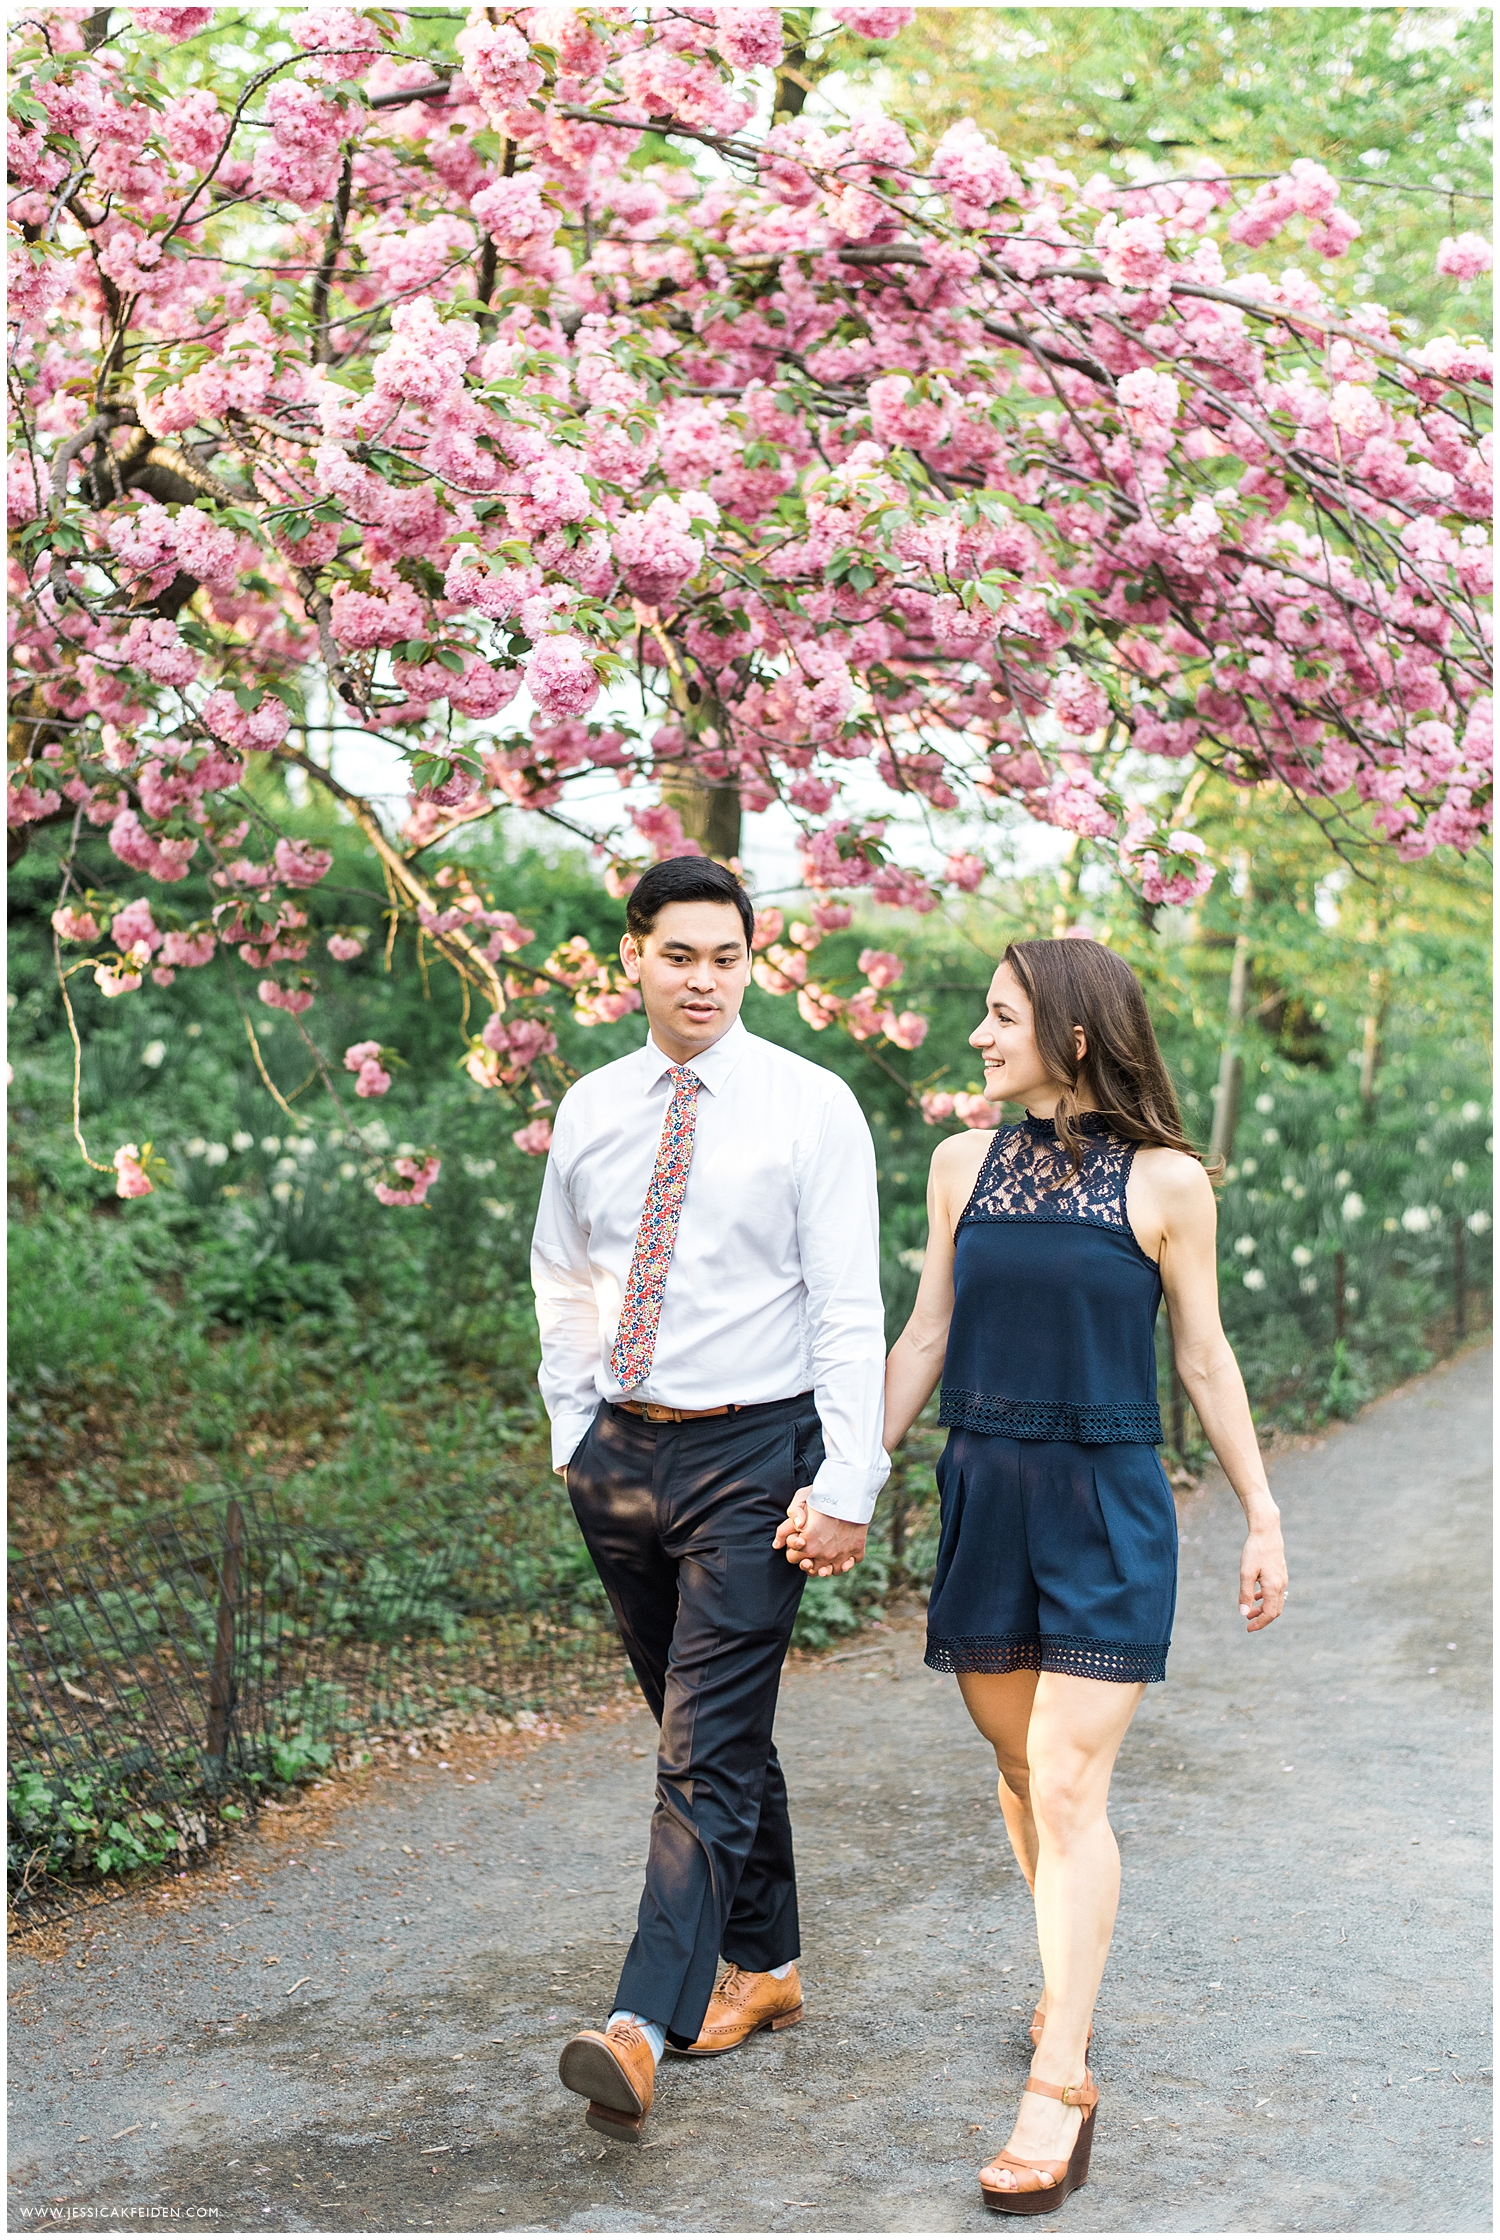 Jessica K Feiden Photography_Central Park NYC Engagement Session_0004.jpg